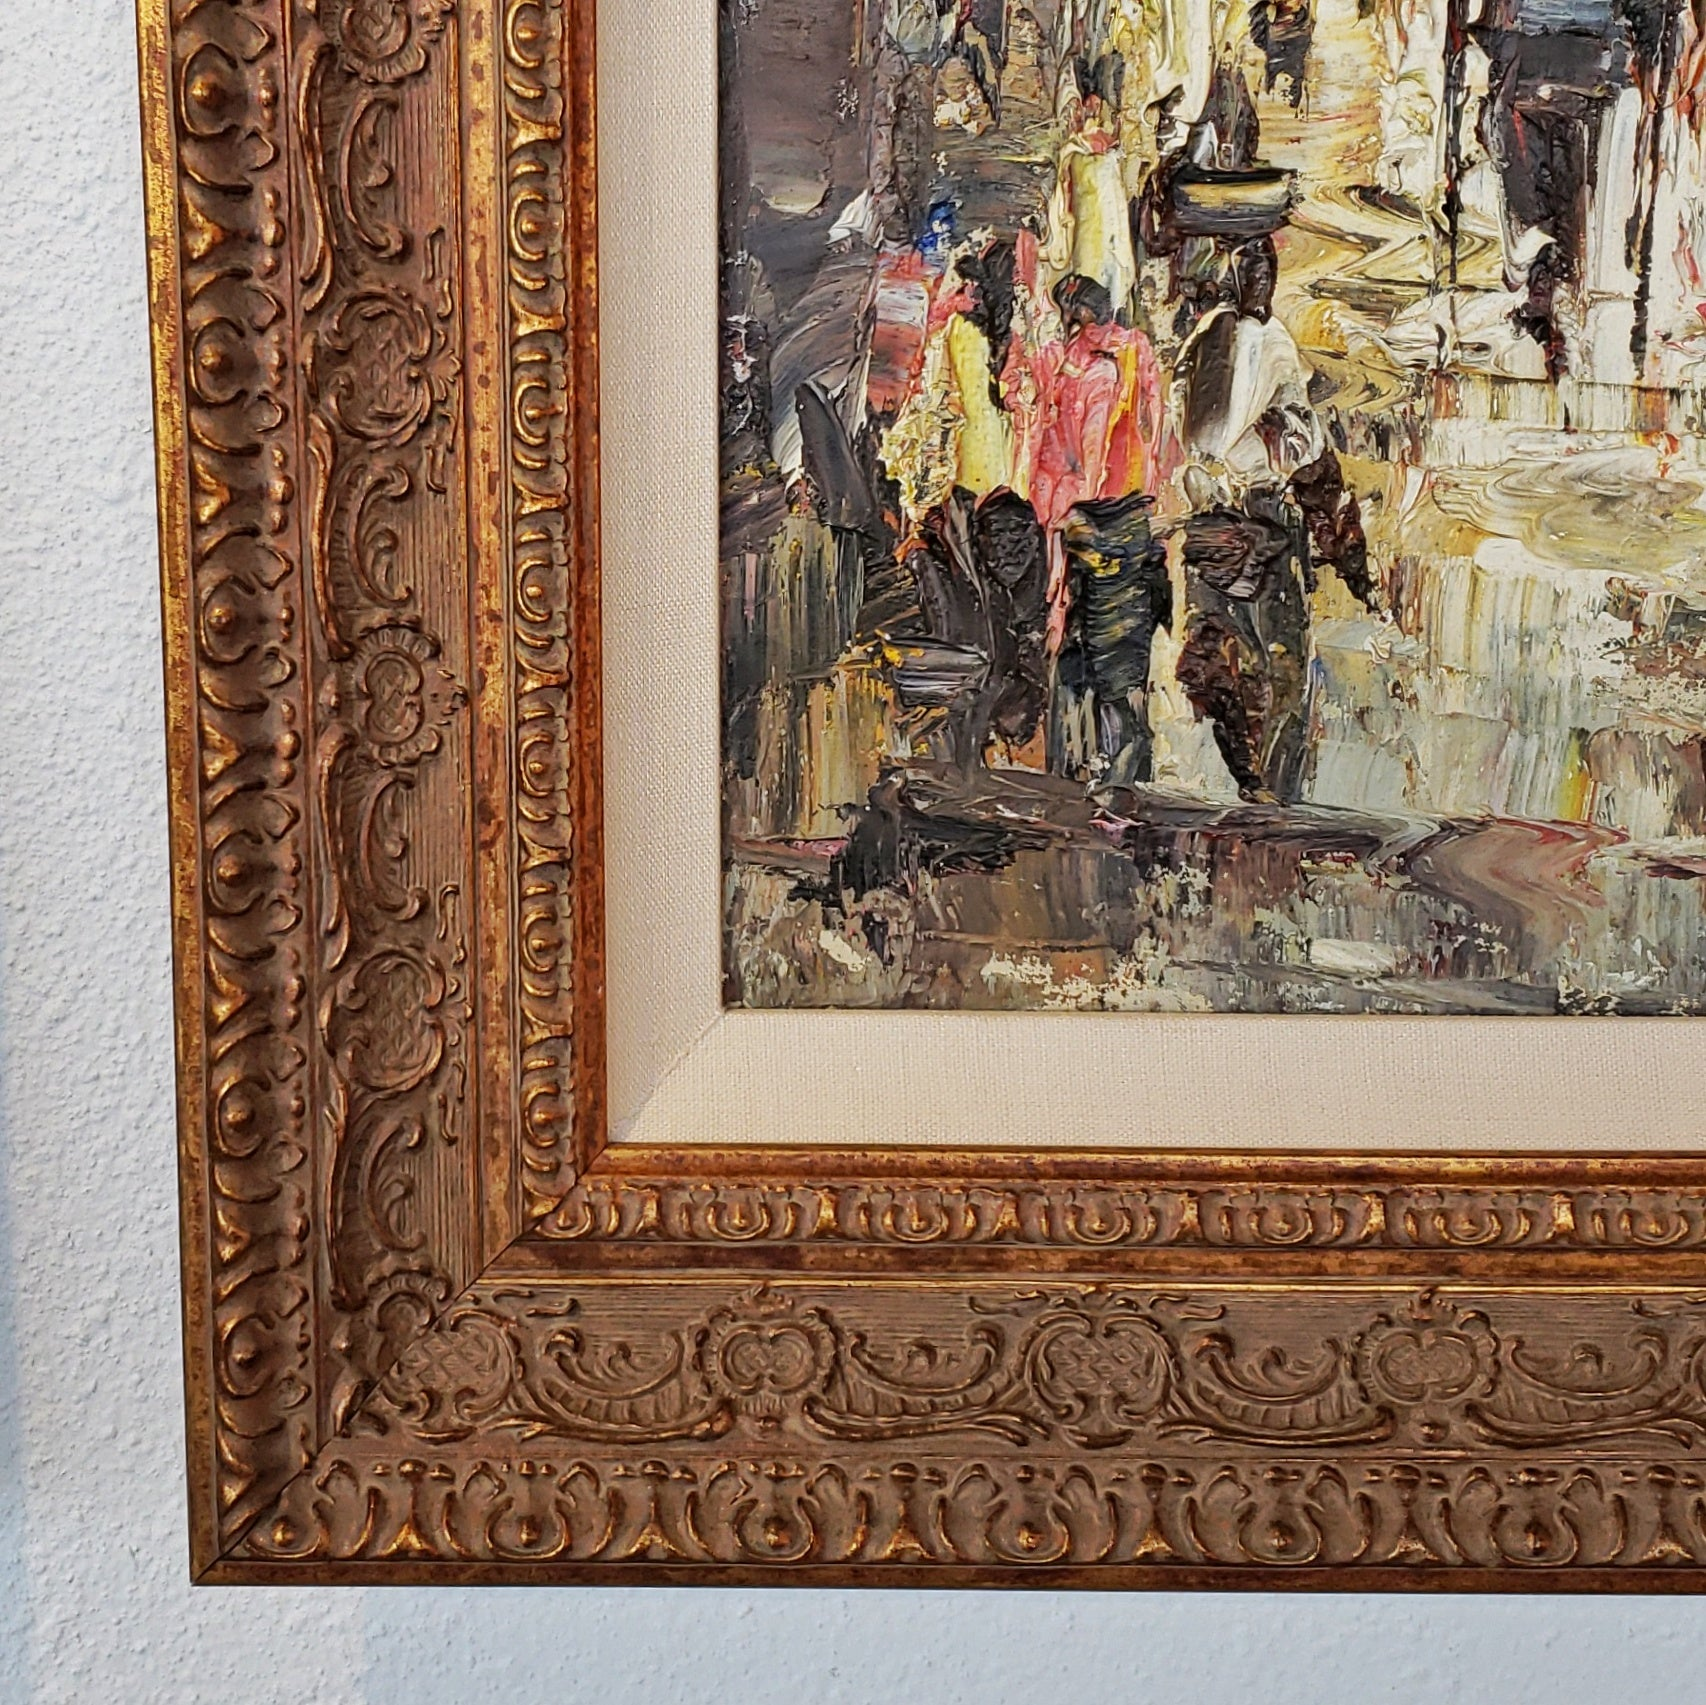 STREET SCENE WITH CARRIAGE - OIL IMPASTO ON CANVAS